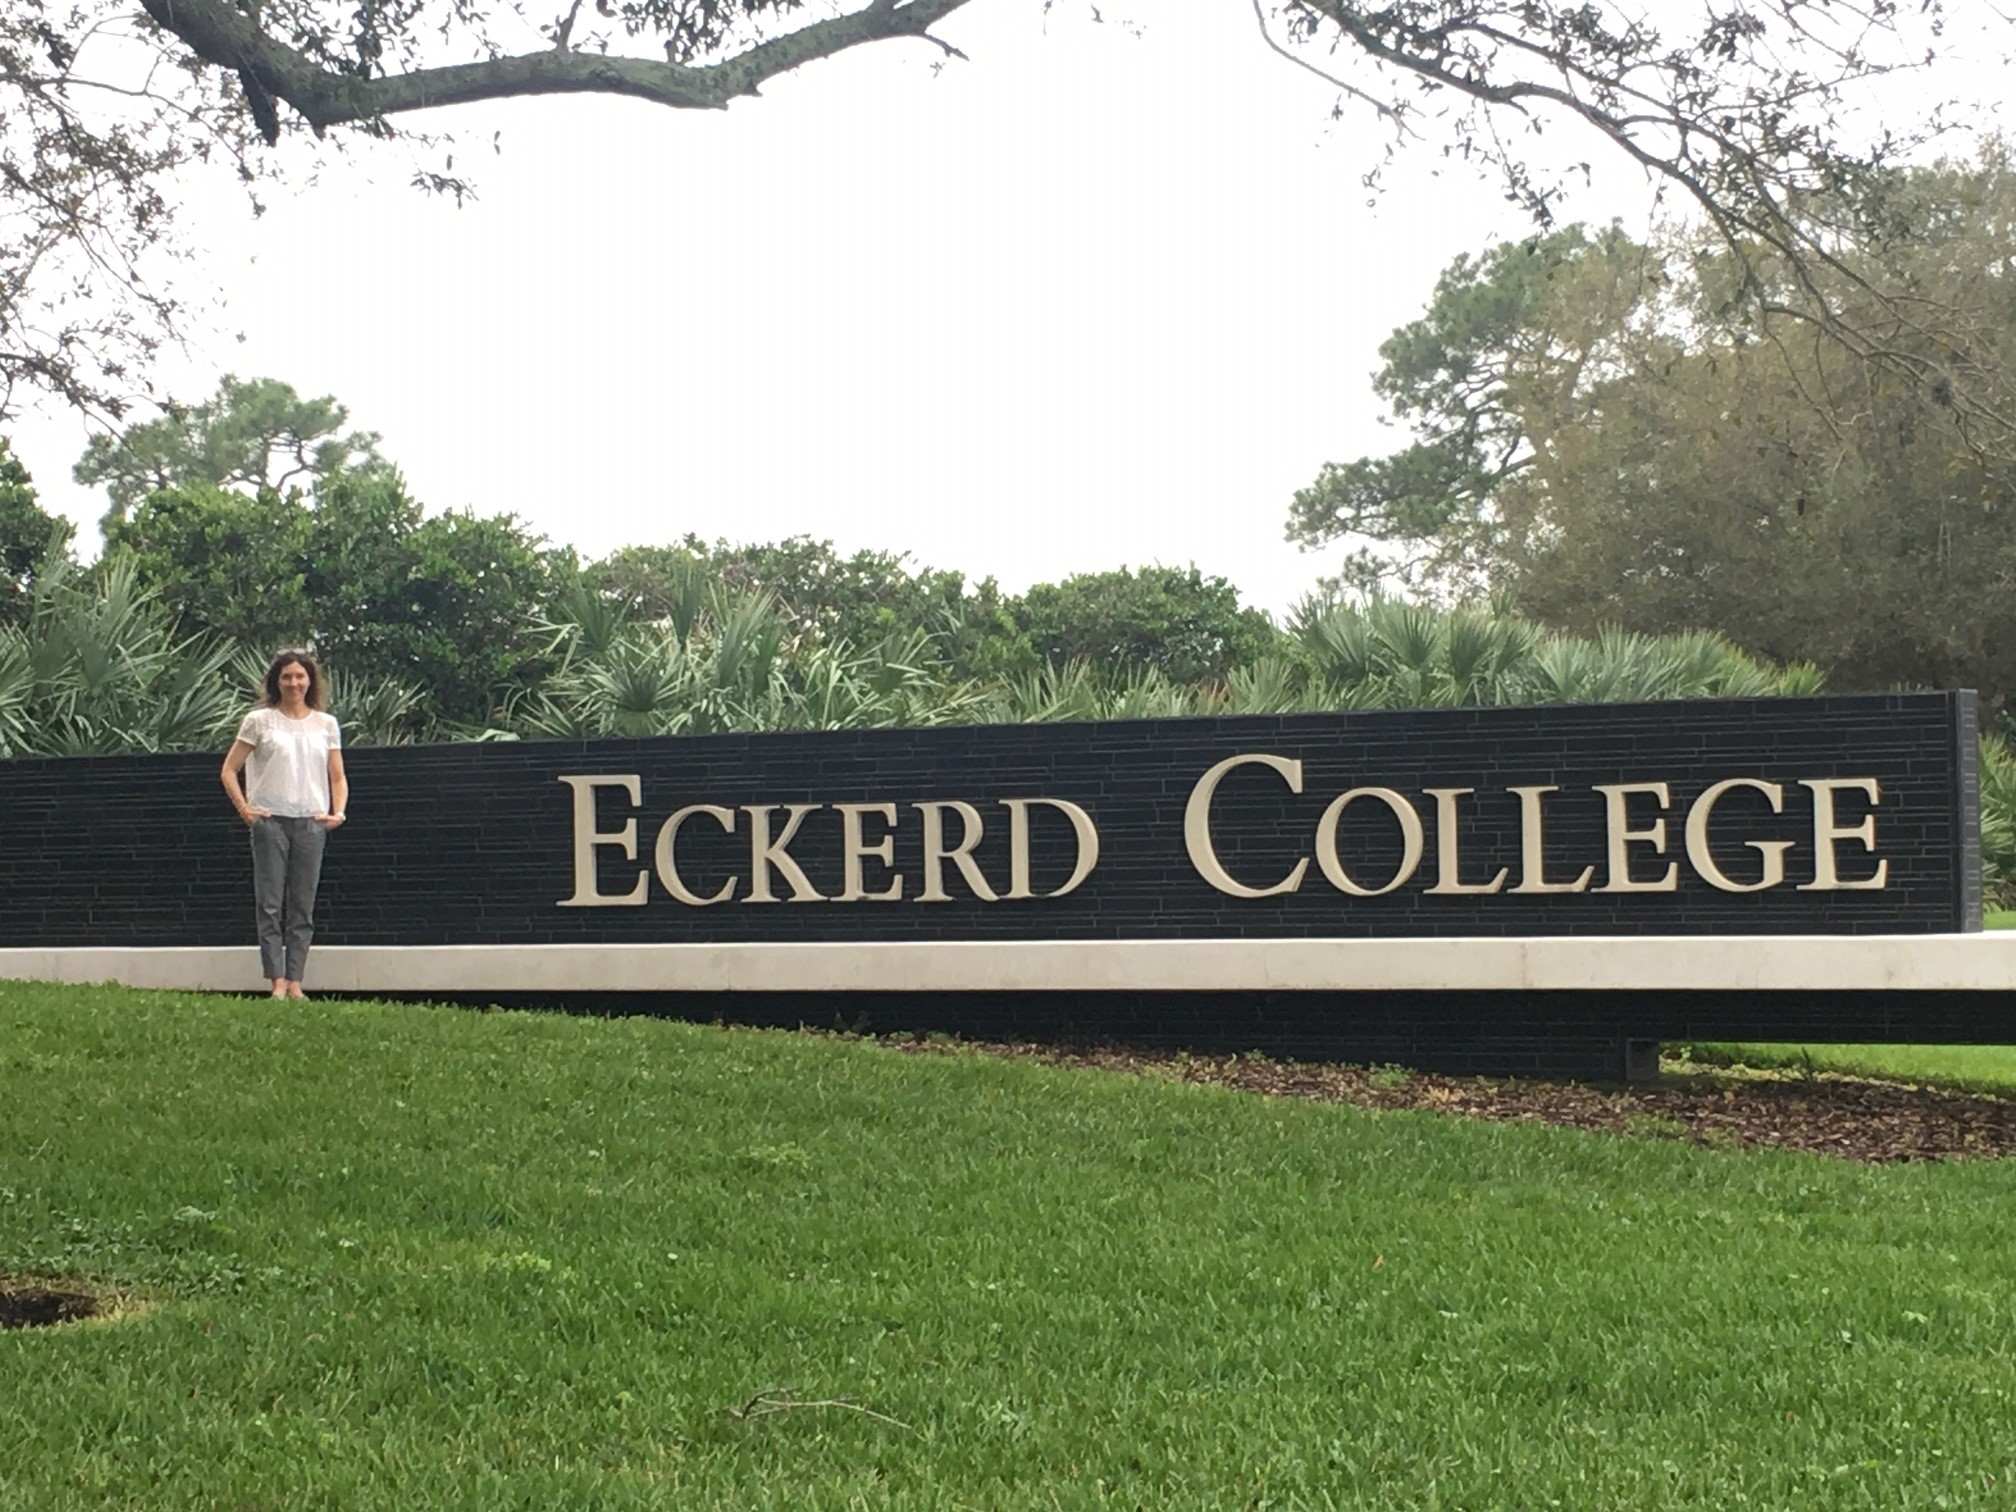 School sign.eckerd.jpg